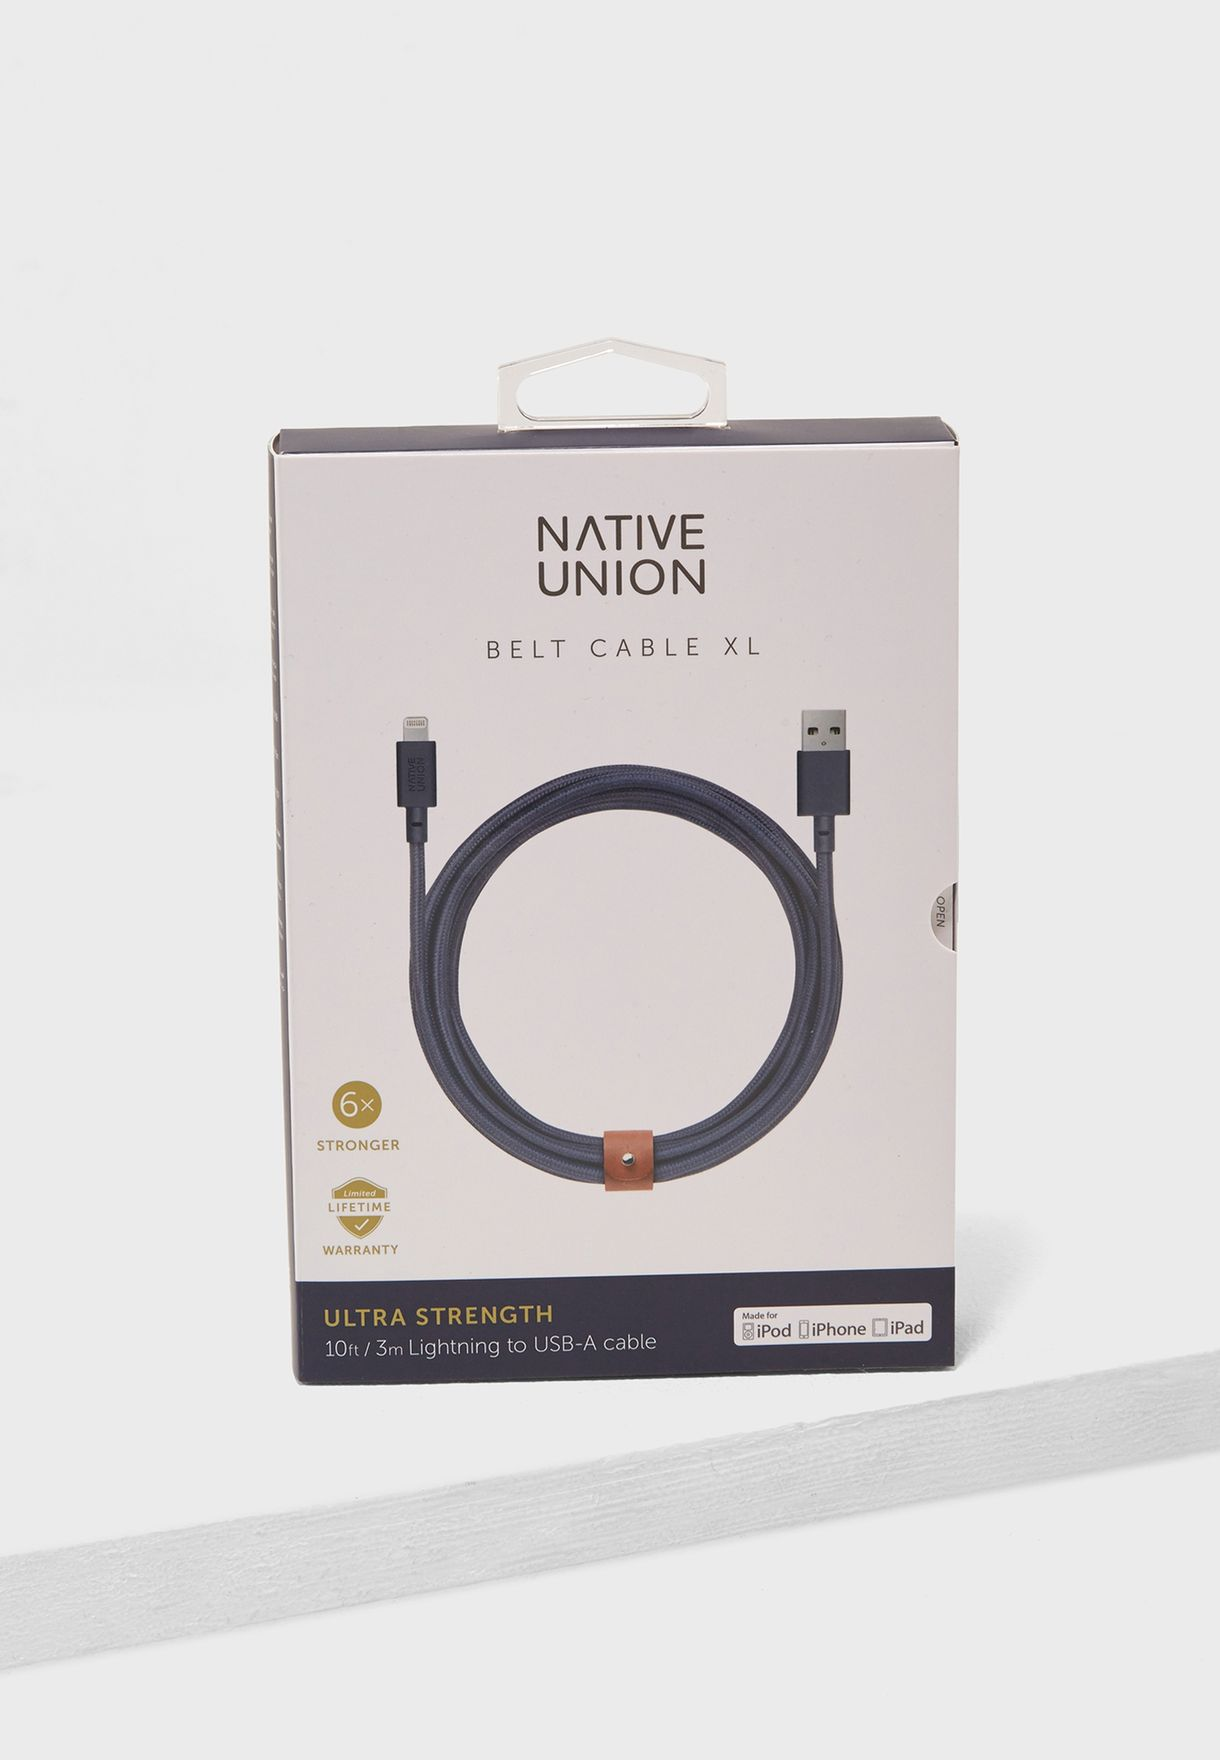 3 Mtr Lightning Cable With Cable Belt